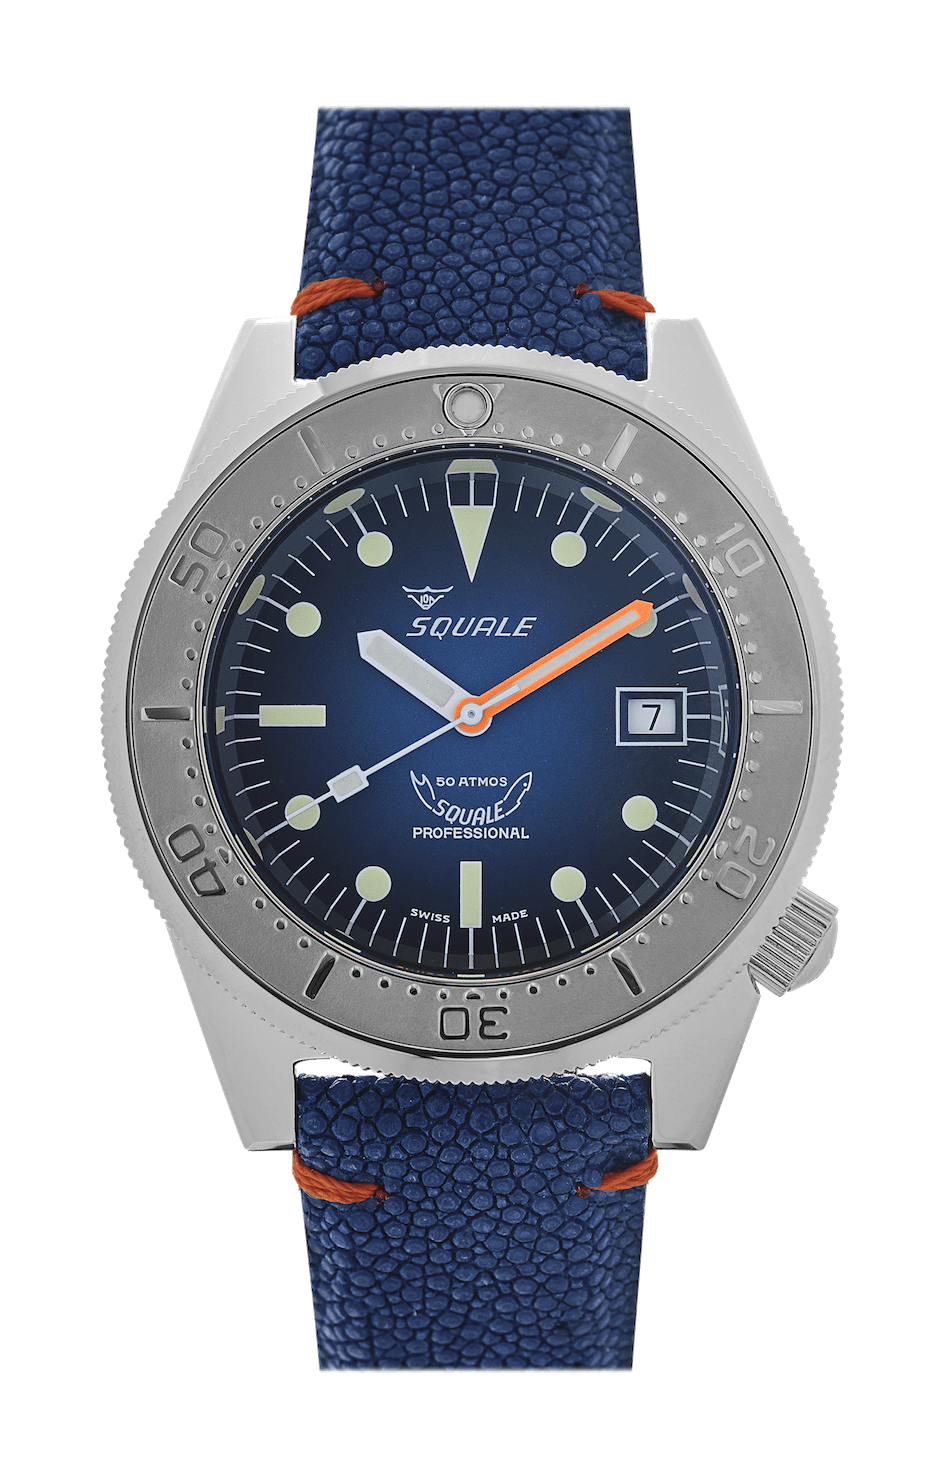 Squale 1521 50 ATMOS Blue Ray Polert - Watchus